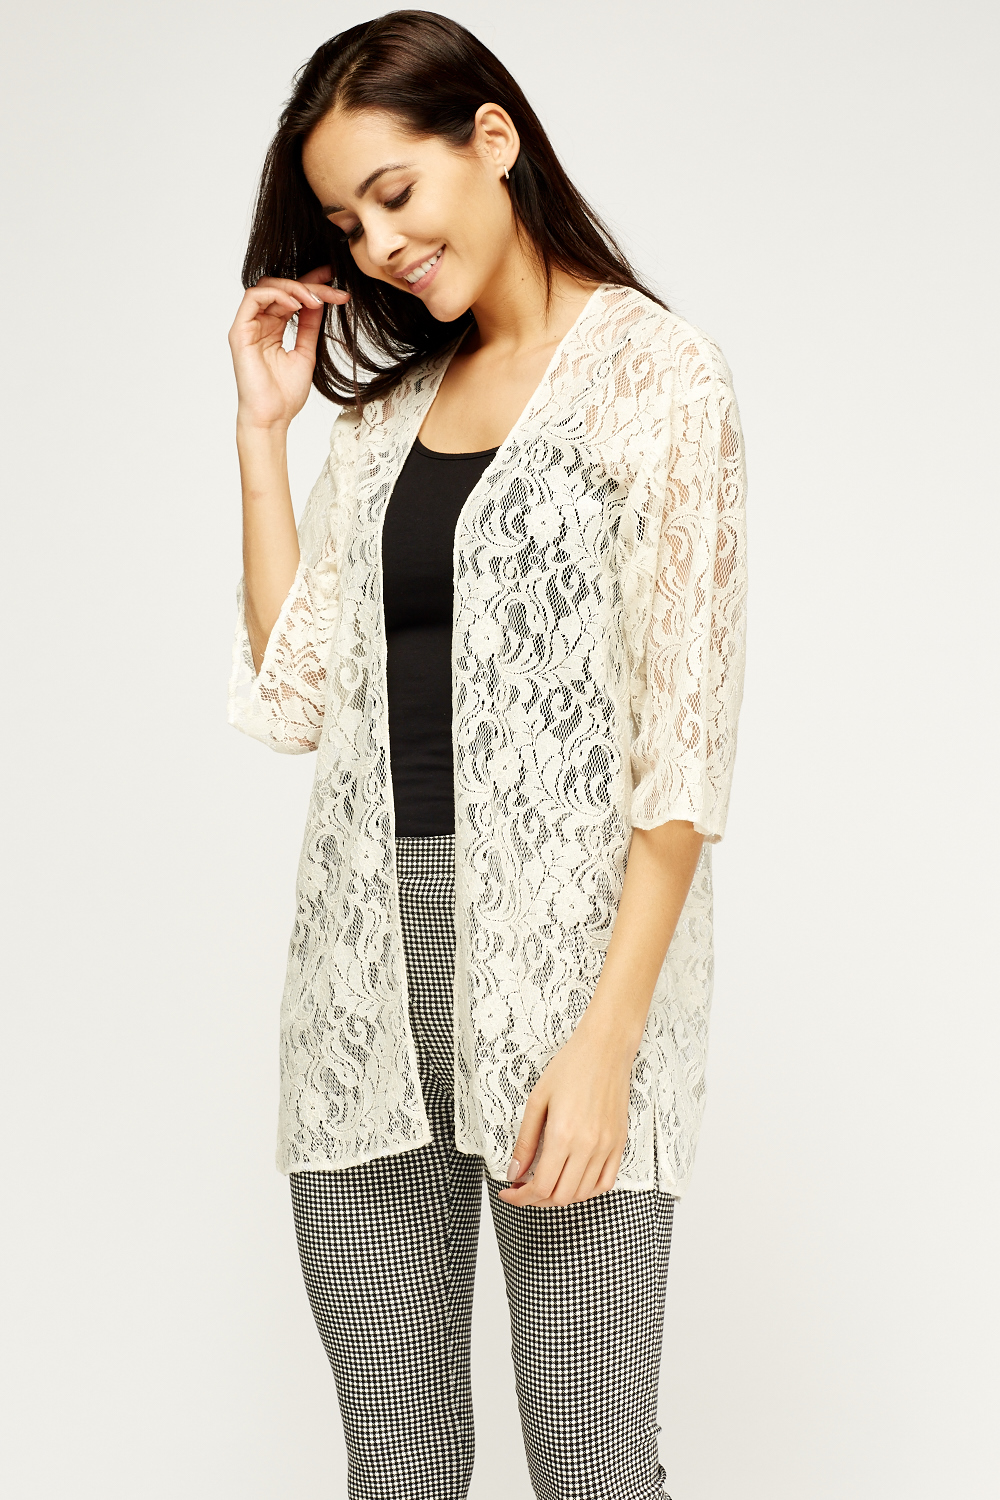 Shop for cream lace cardigan online at Target. Free shipping on purchases over $35 and save 5% every day with your Target REDcard.